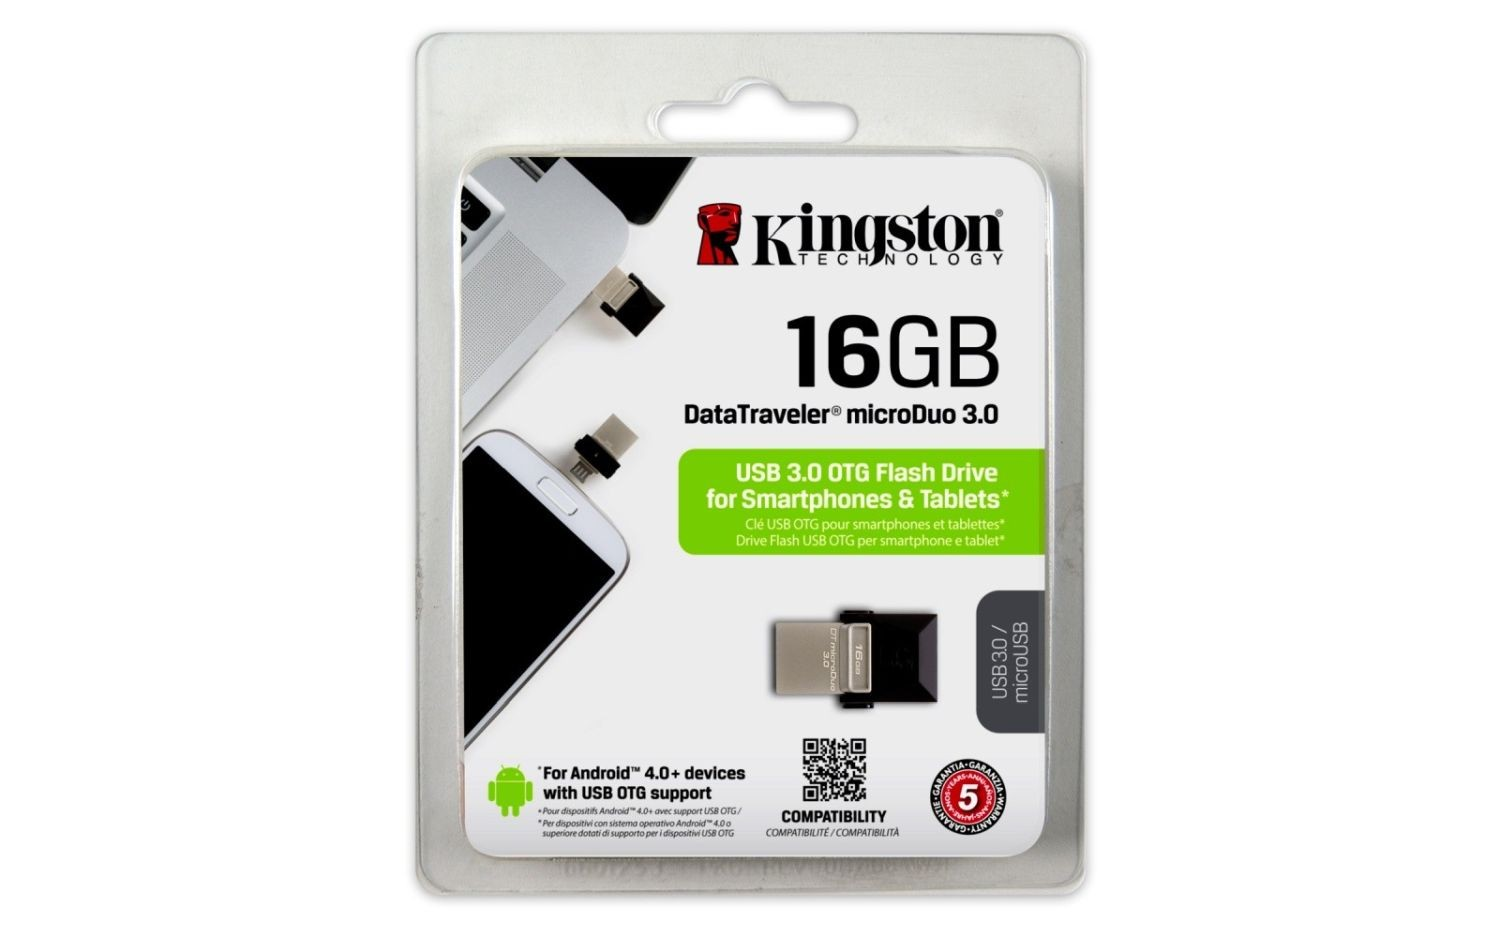 Kingston pamięć USB 16GB DT microDuo USB 3.0 micro&USB OTG